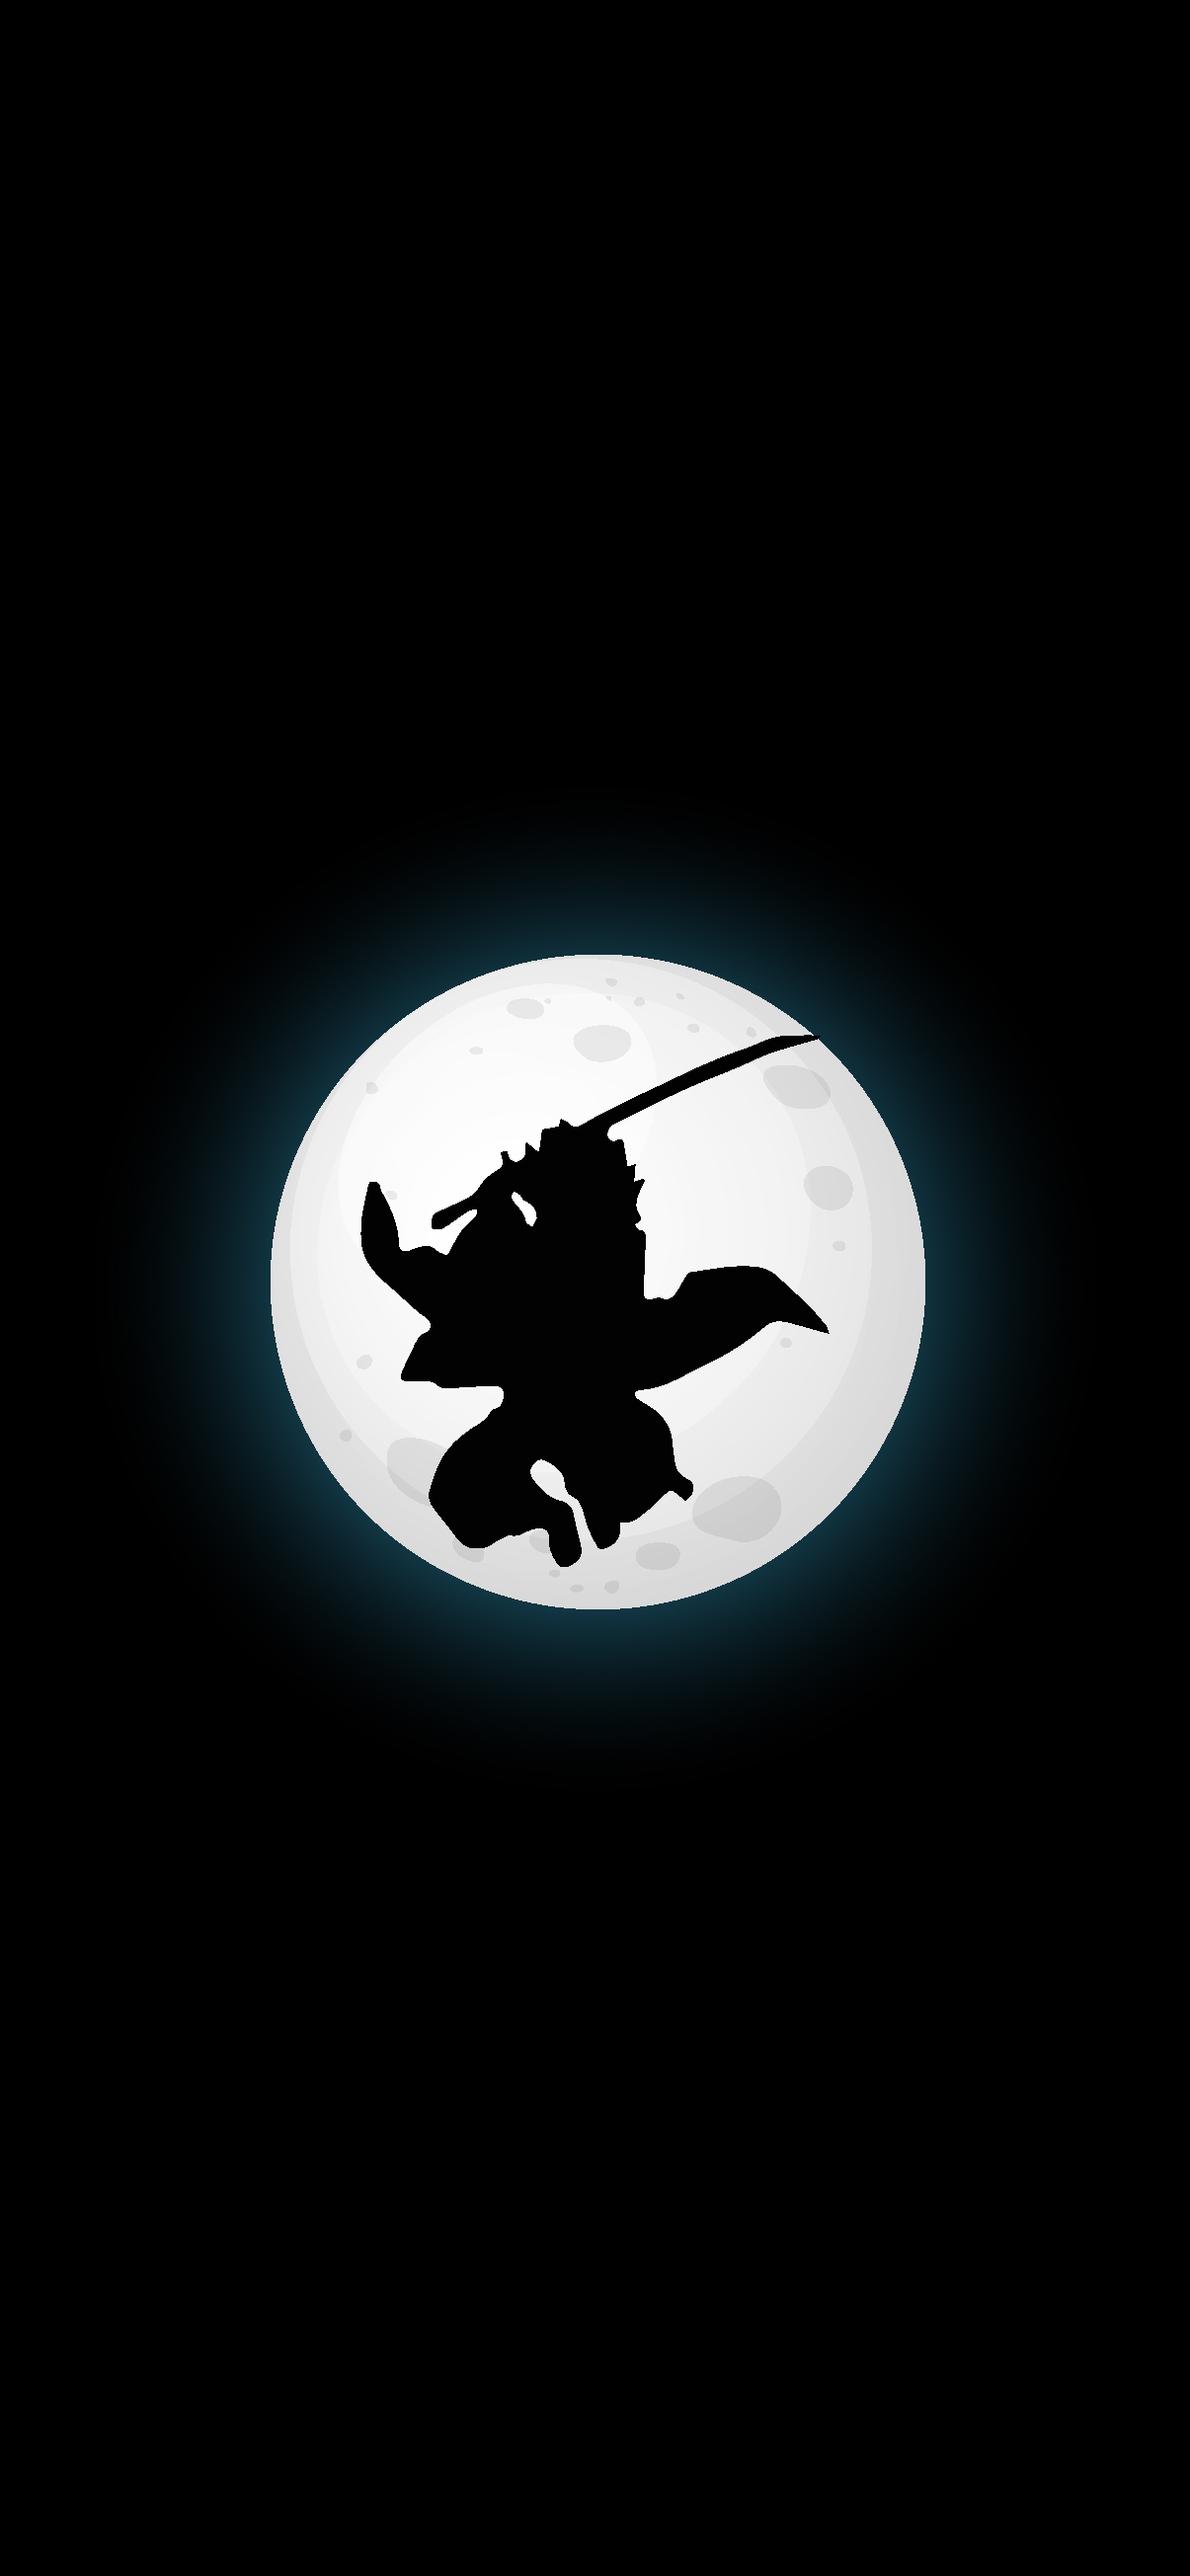 Anime wallpaper amoled - Demon Slayer | HeroScreen - Cool ...